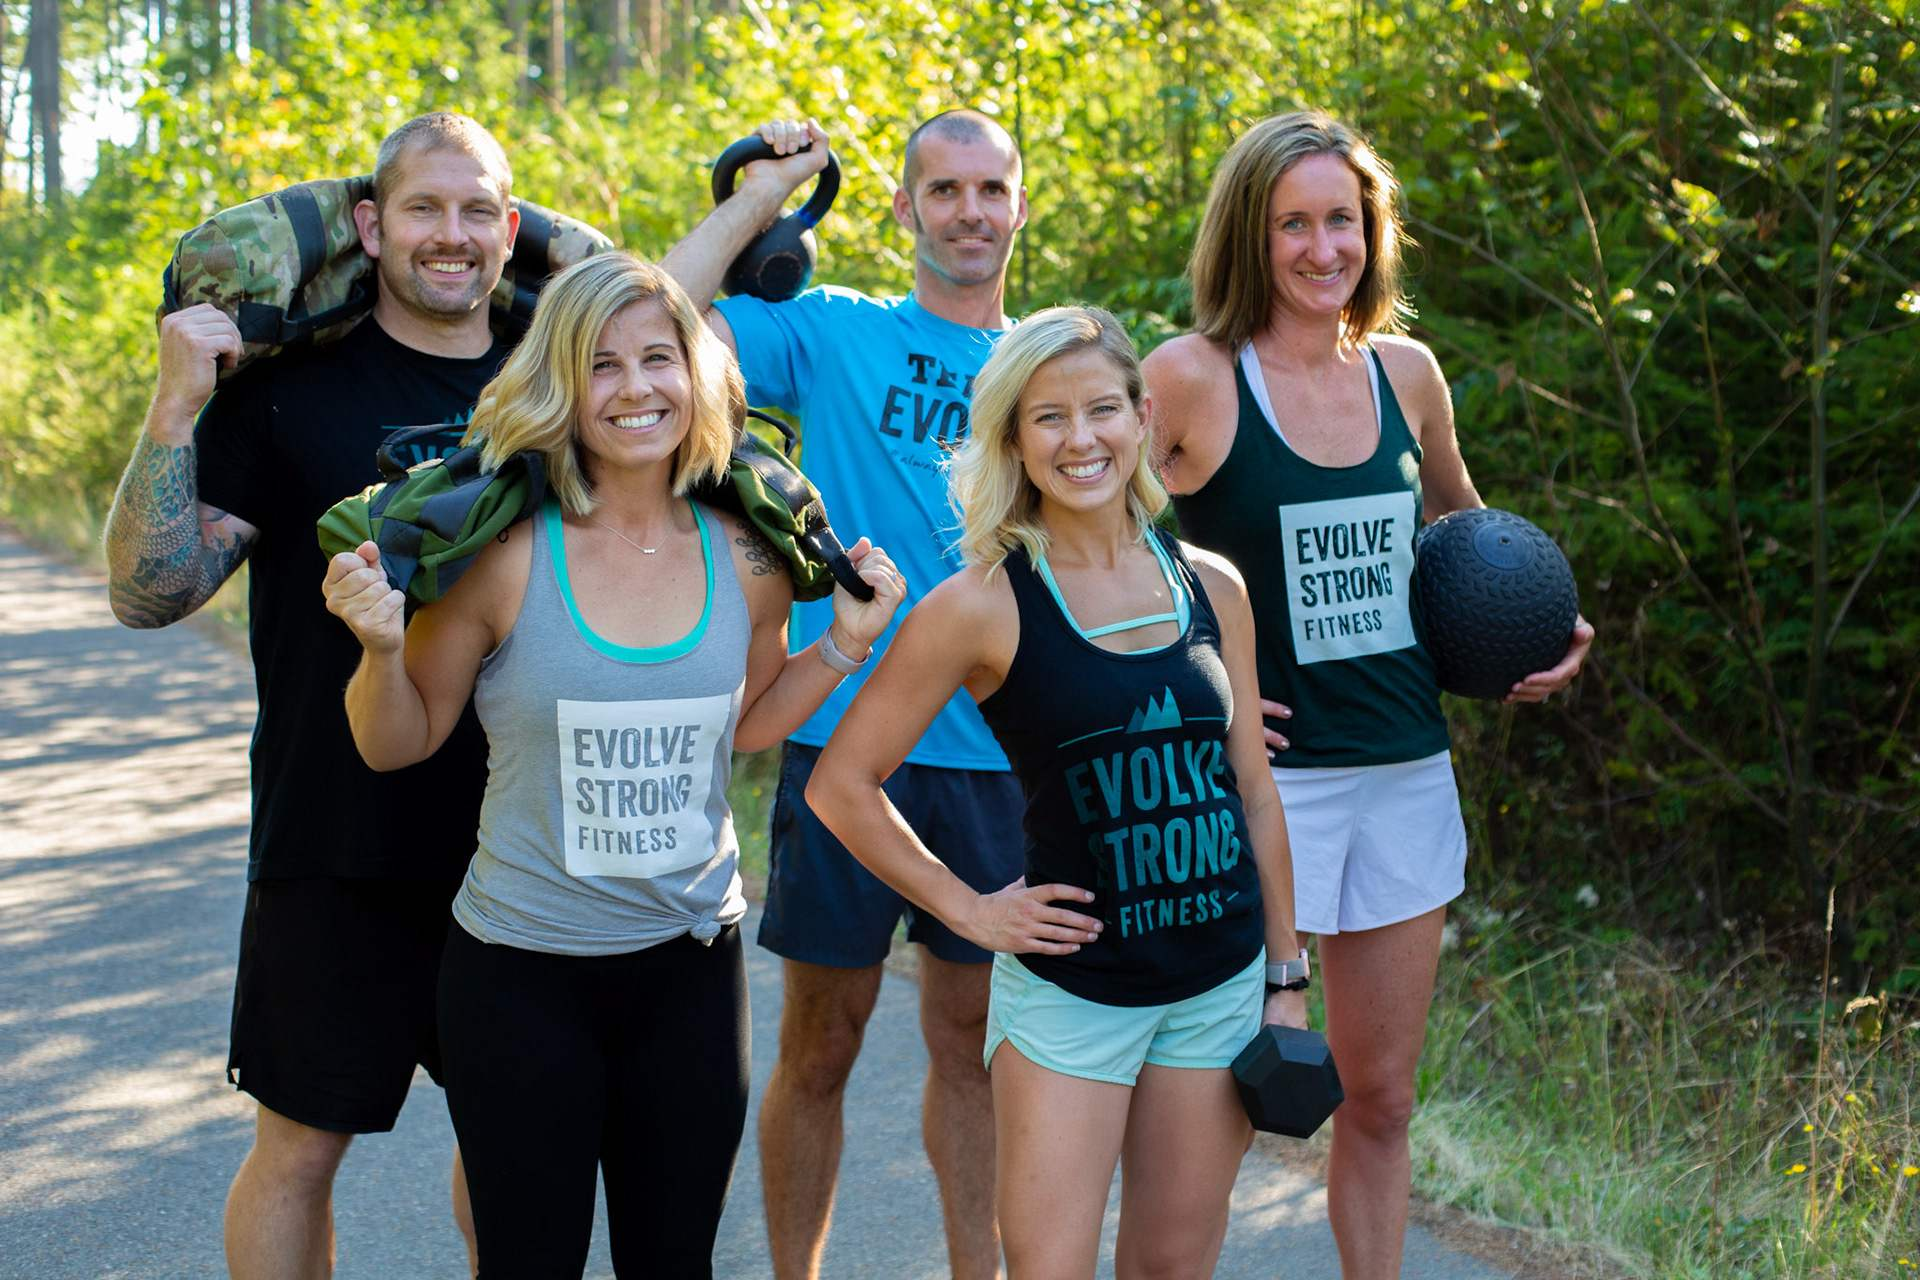 Outdoor fitness class with dumbbells